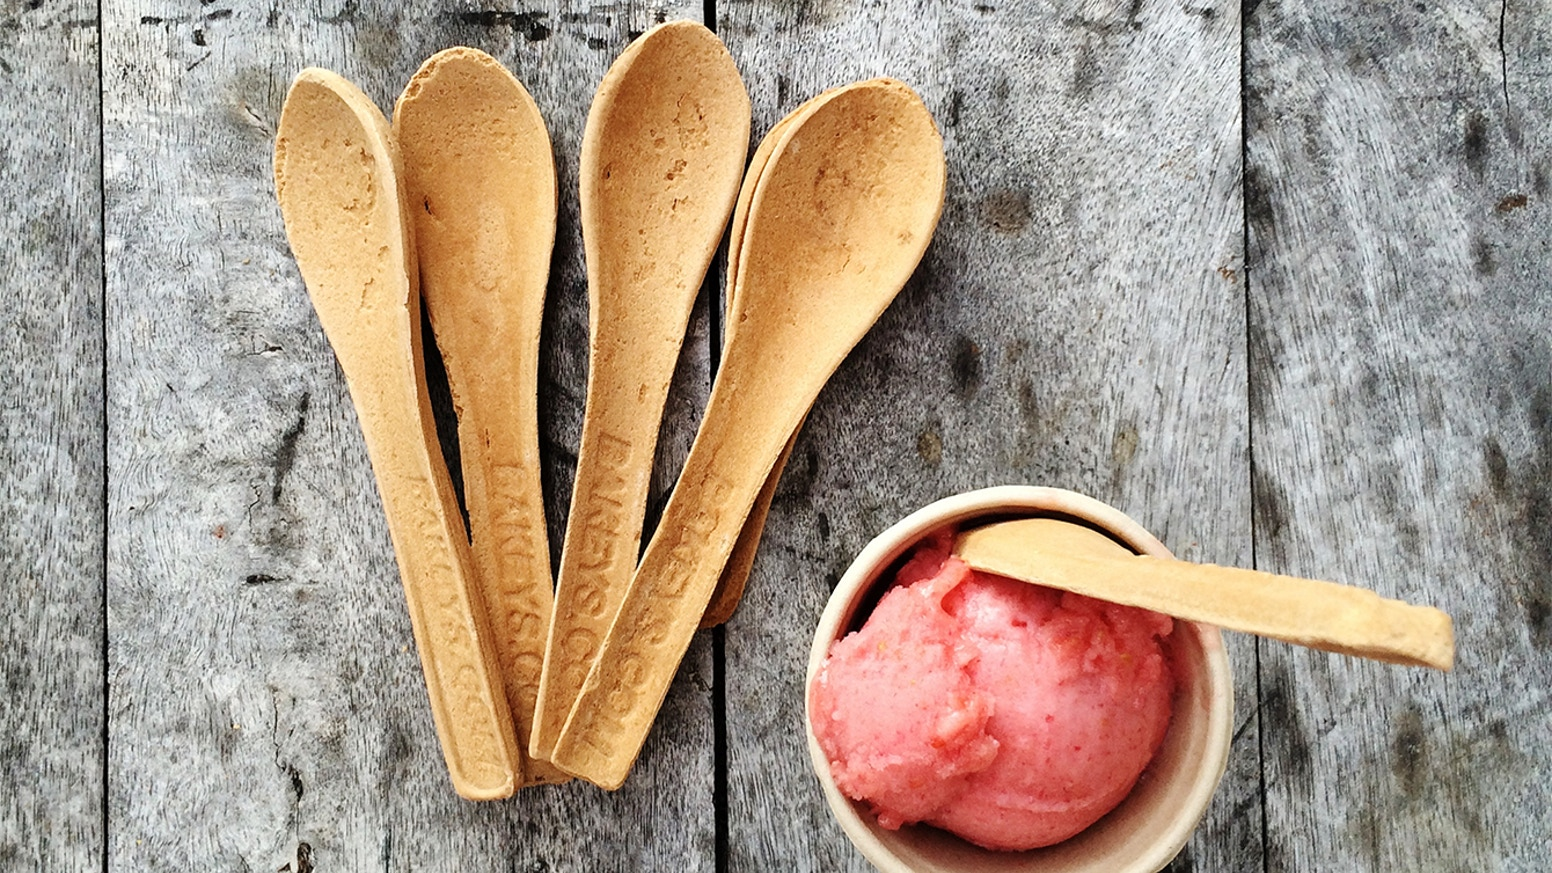 Edible Cutlery: The Future of Eco Friendly Utensils by Sarah